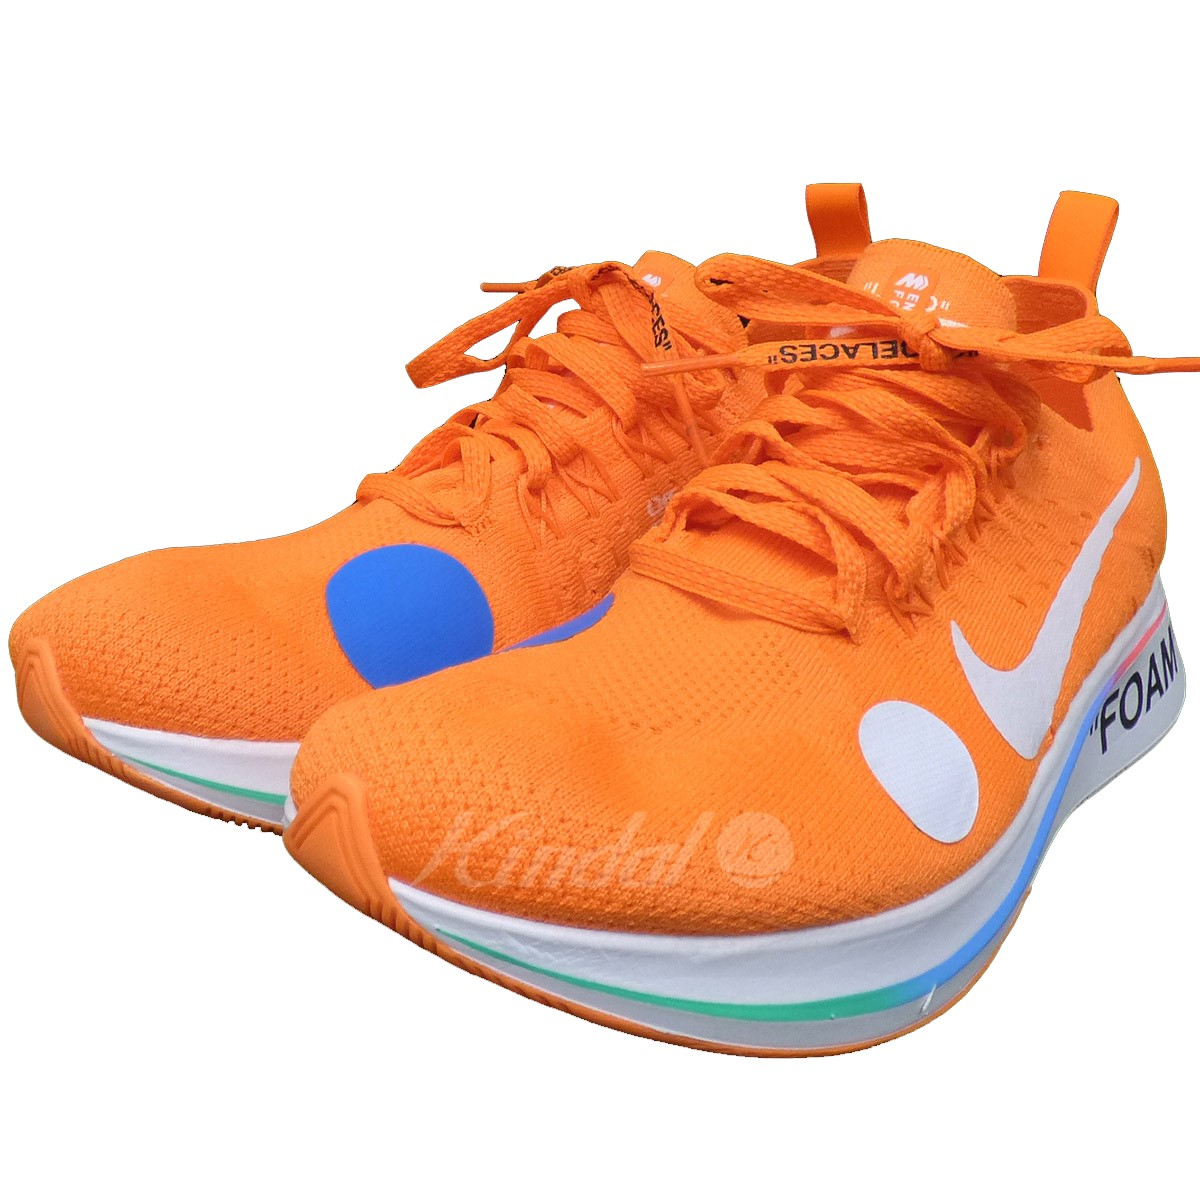 new arrival b3def 8bd3d OFF WHITE X NIKE Zoom Fly Mercurial Flyknit zoom fly fly knit sneakers  orange size  US9(27cm) (off-white Nike)